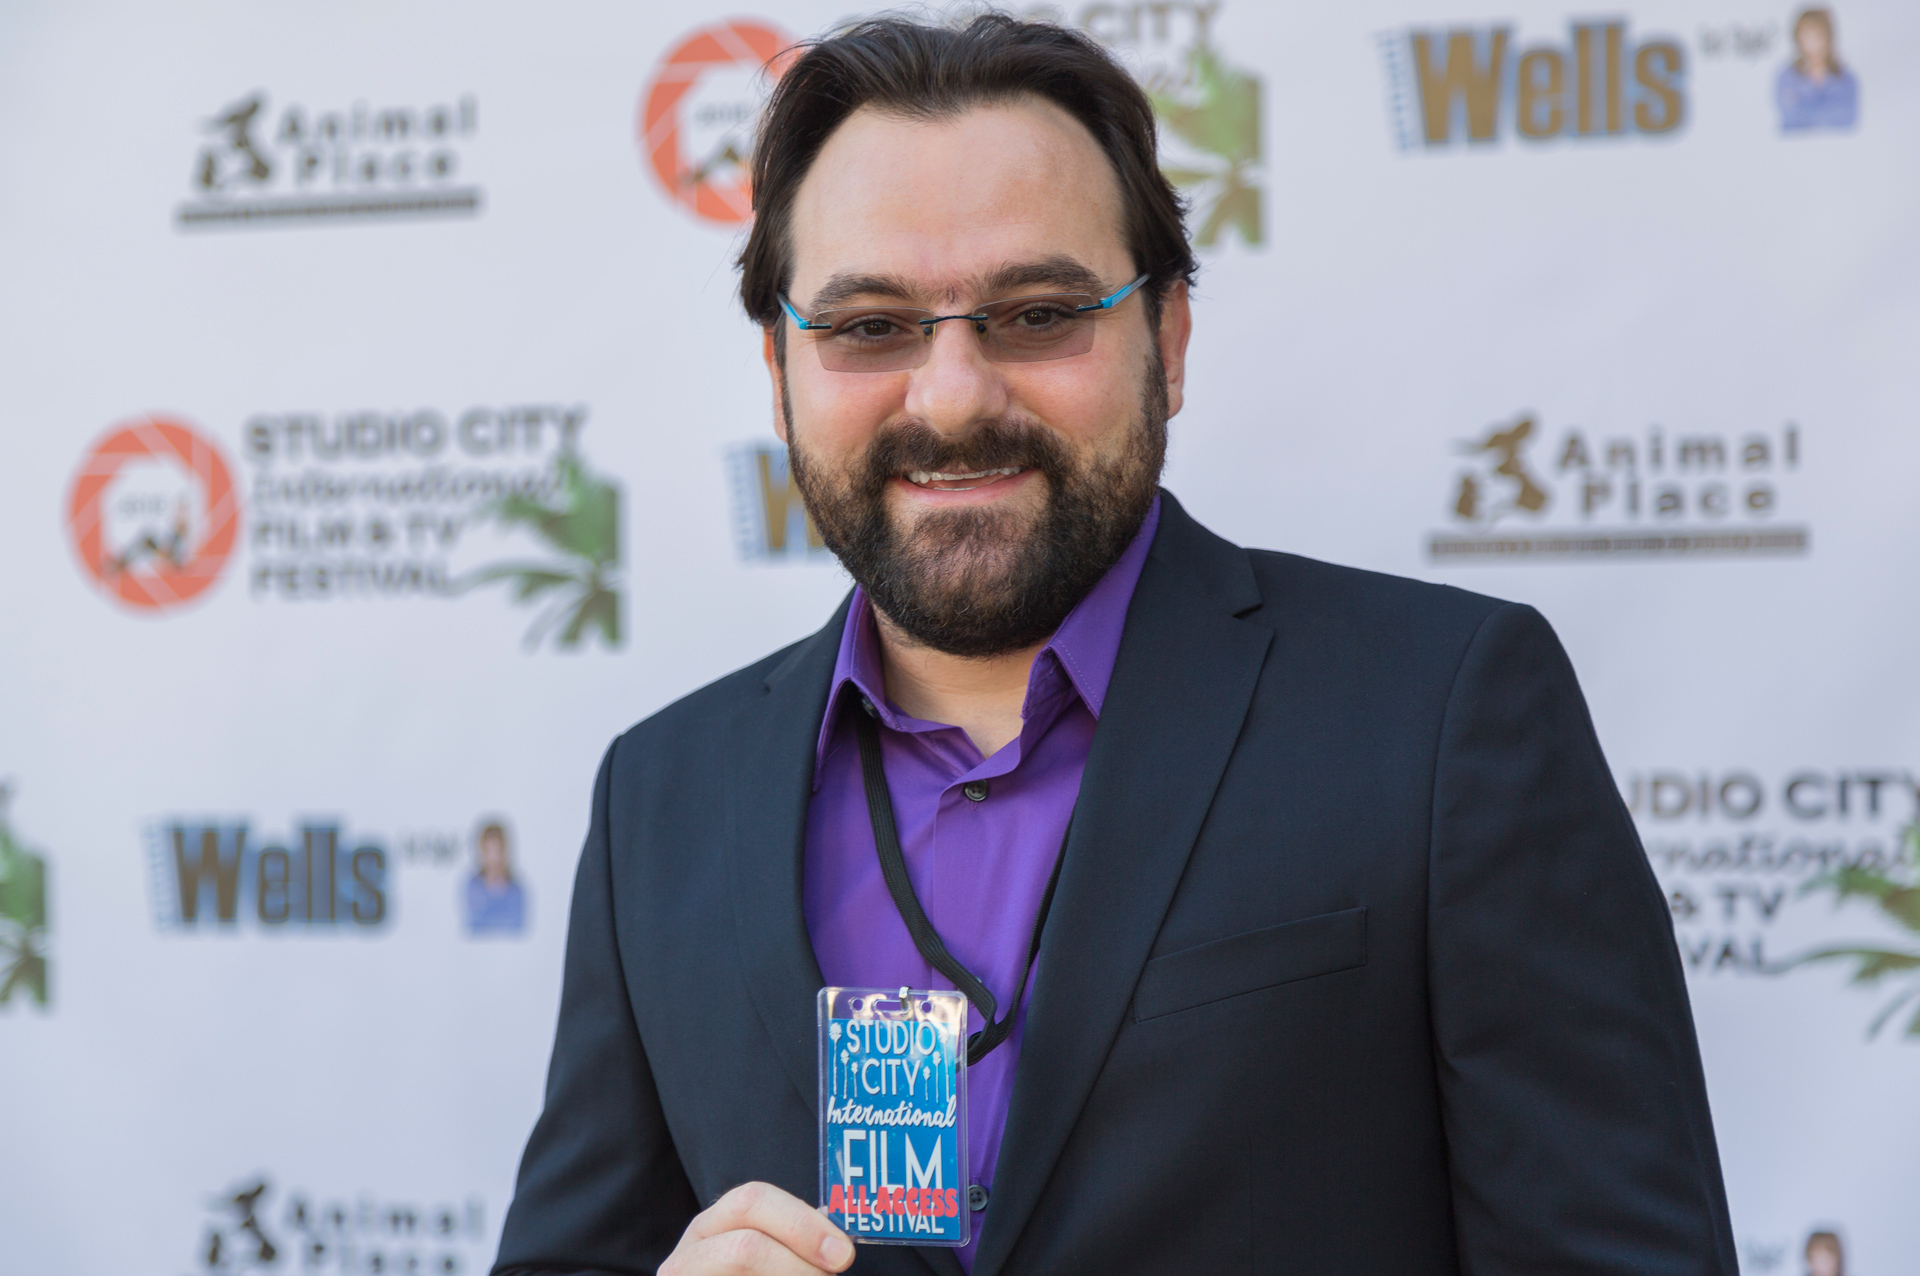 Studio City Intl Film Festival